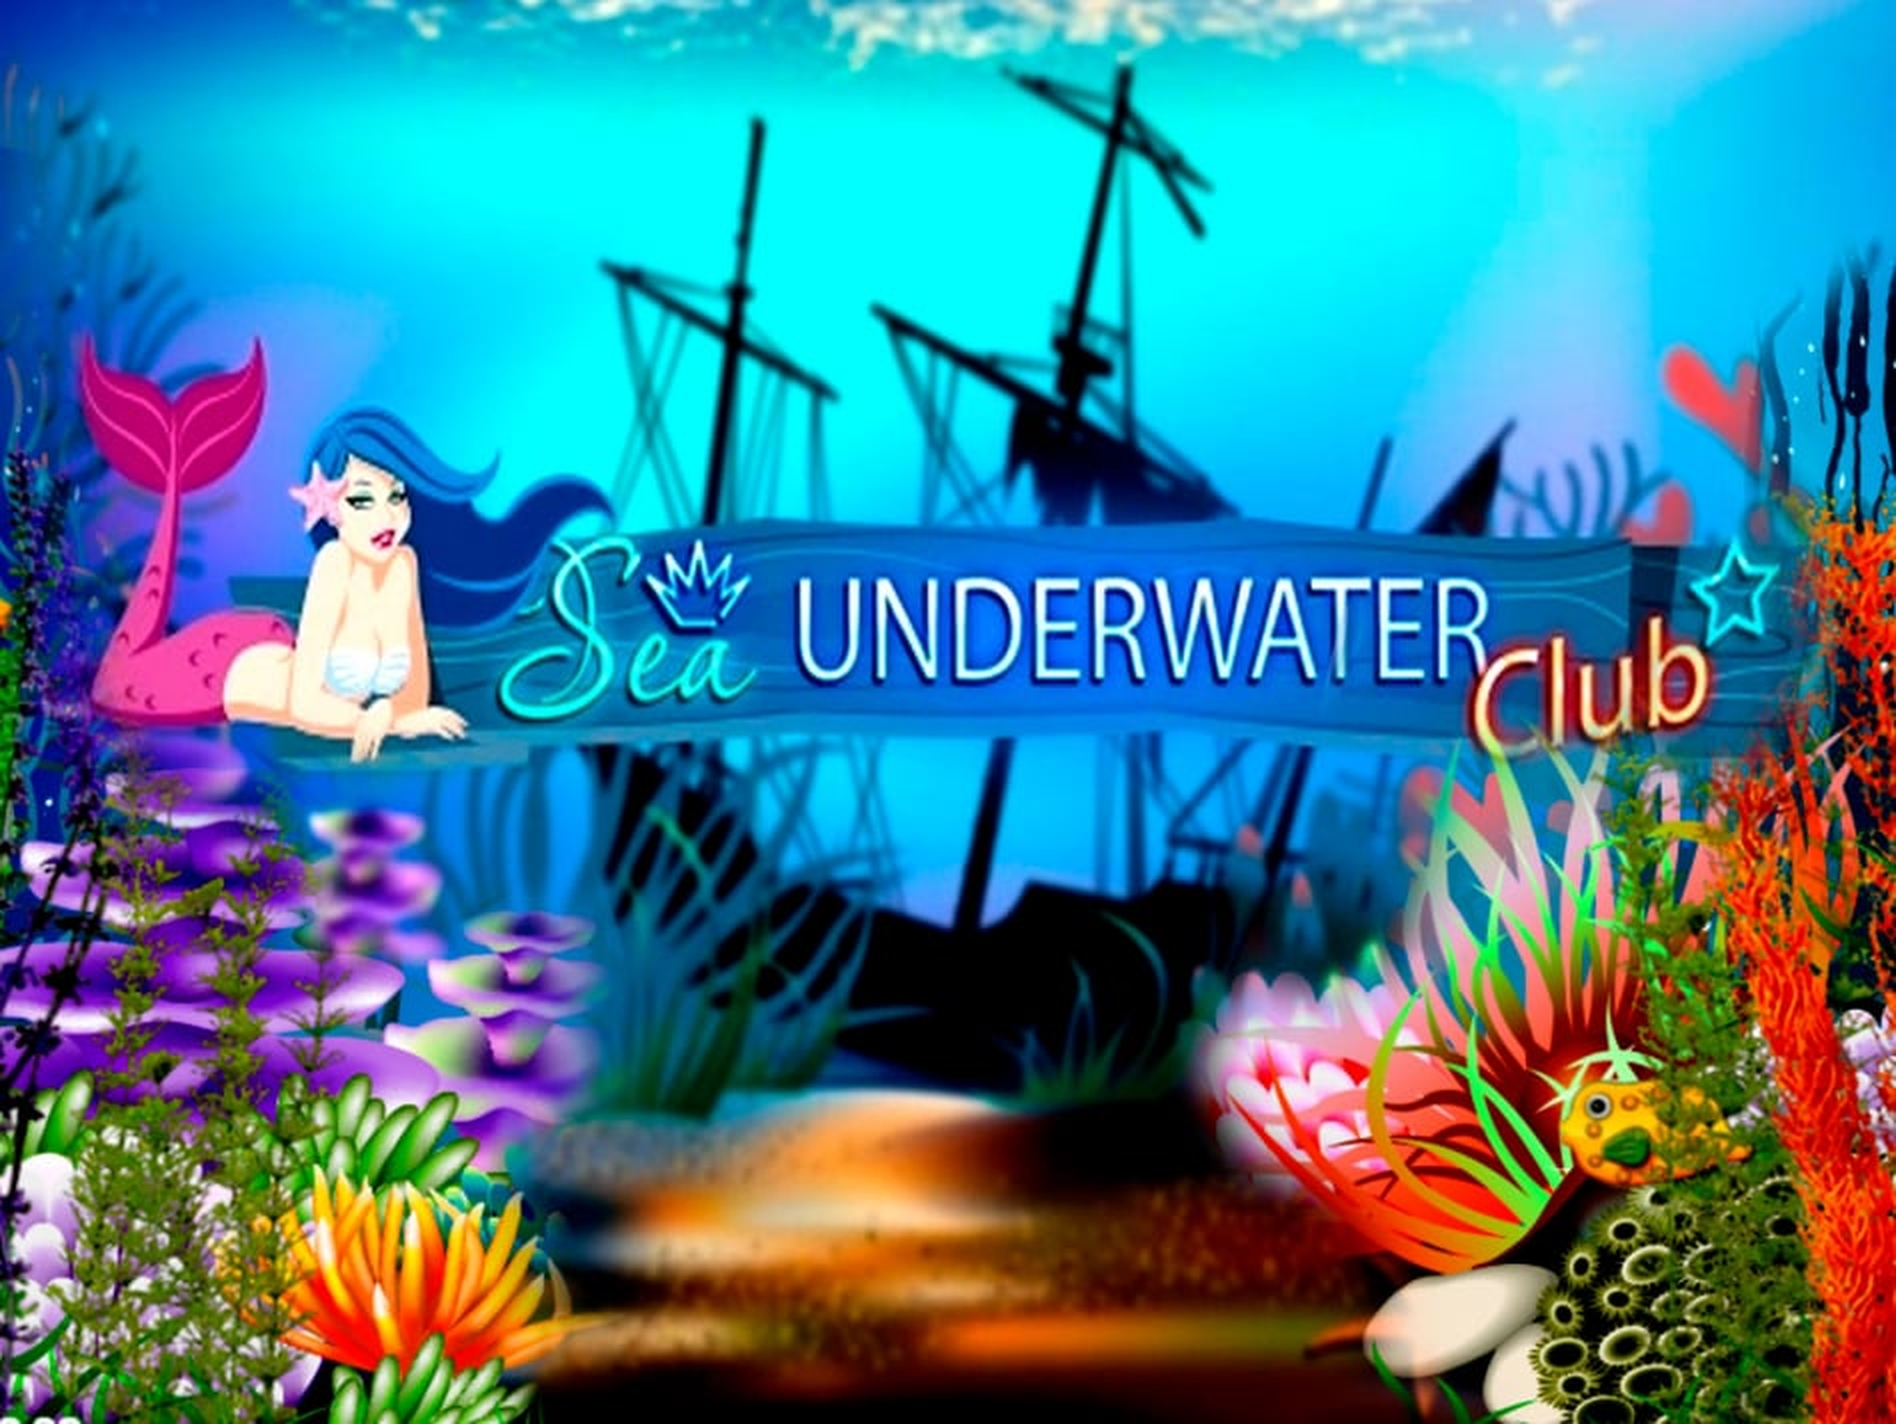 The Sea Underwater Club Online Slot Demo Game by Fugaso